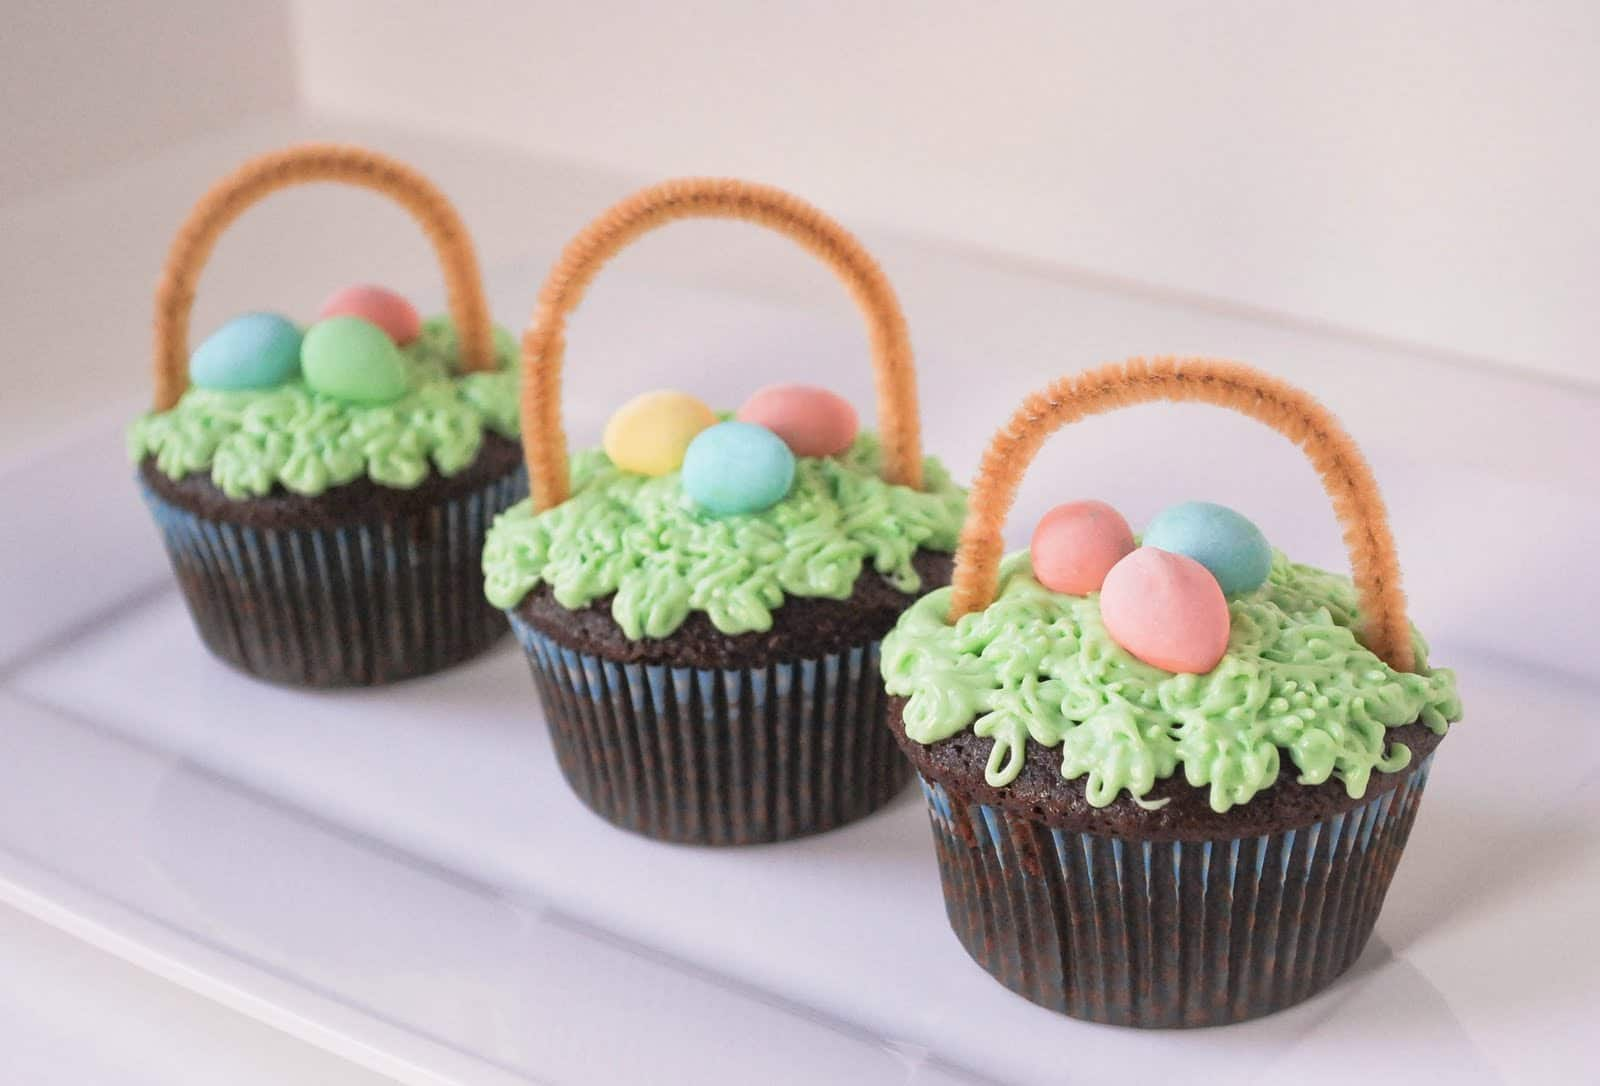 Spring baked goods, cupcakes